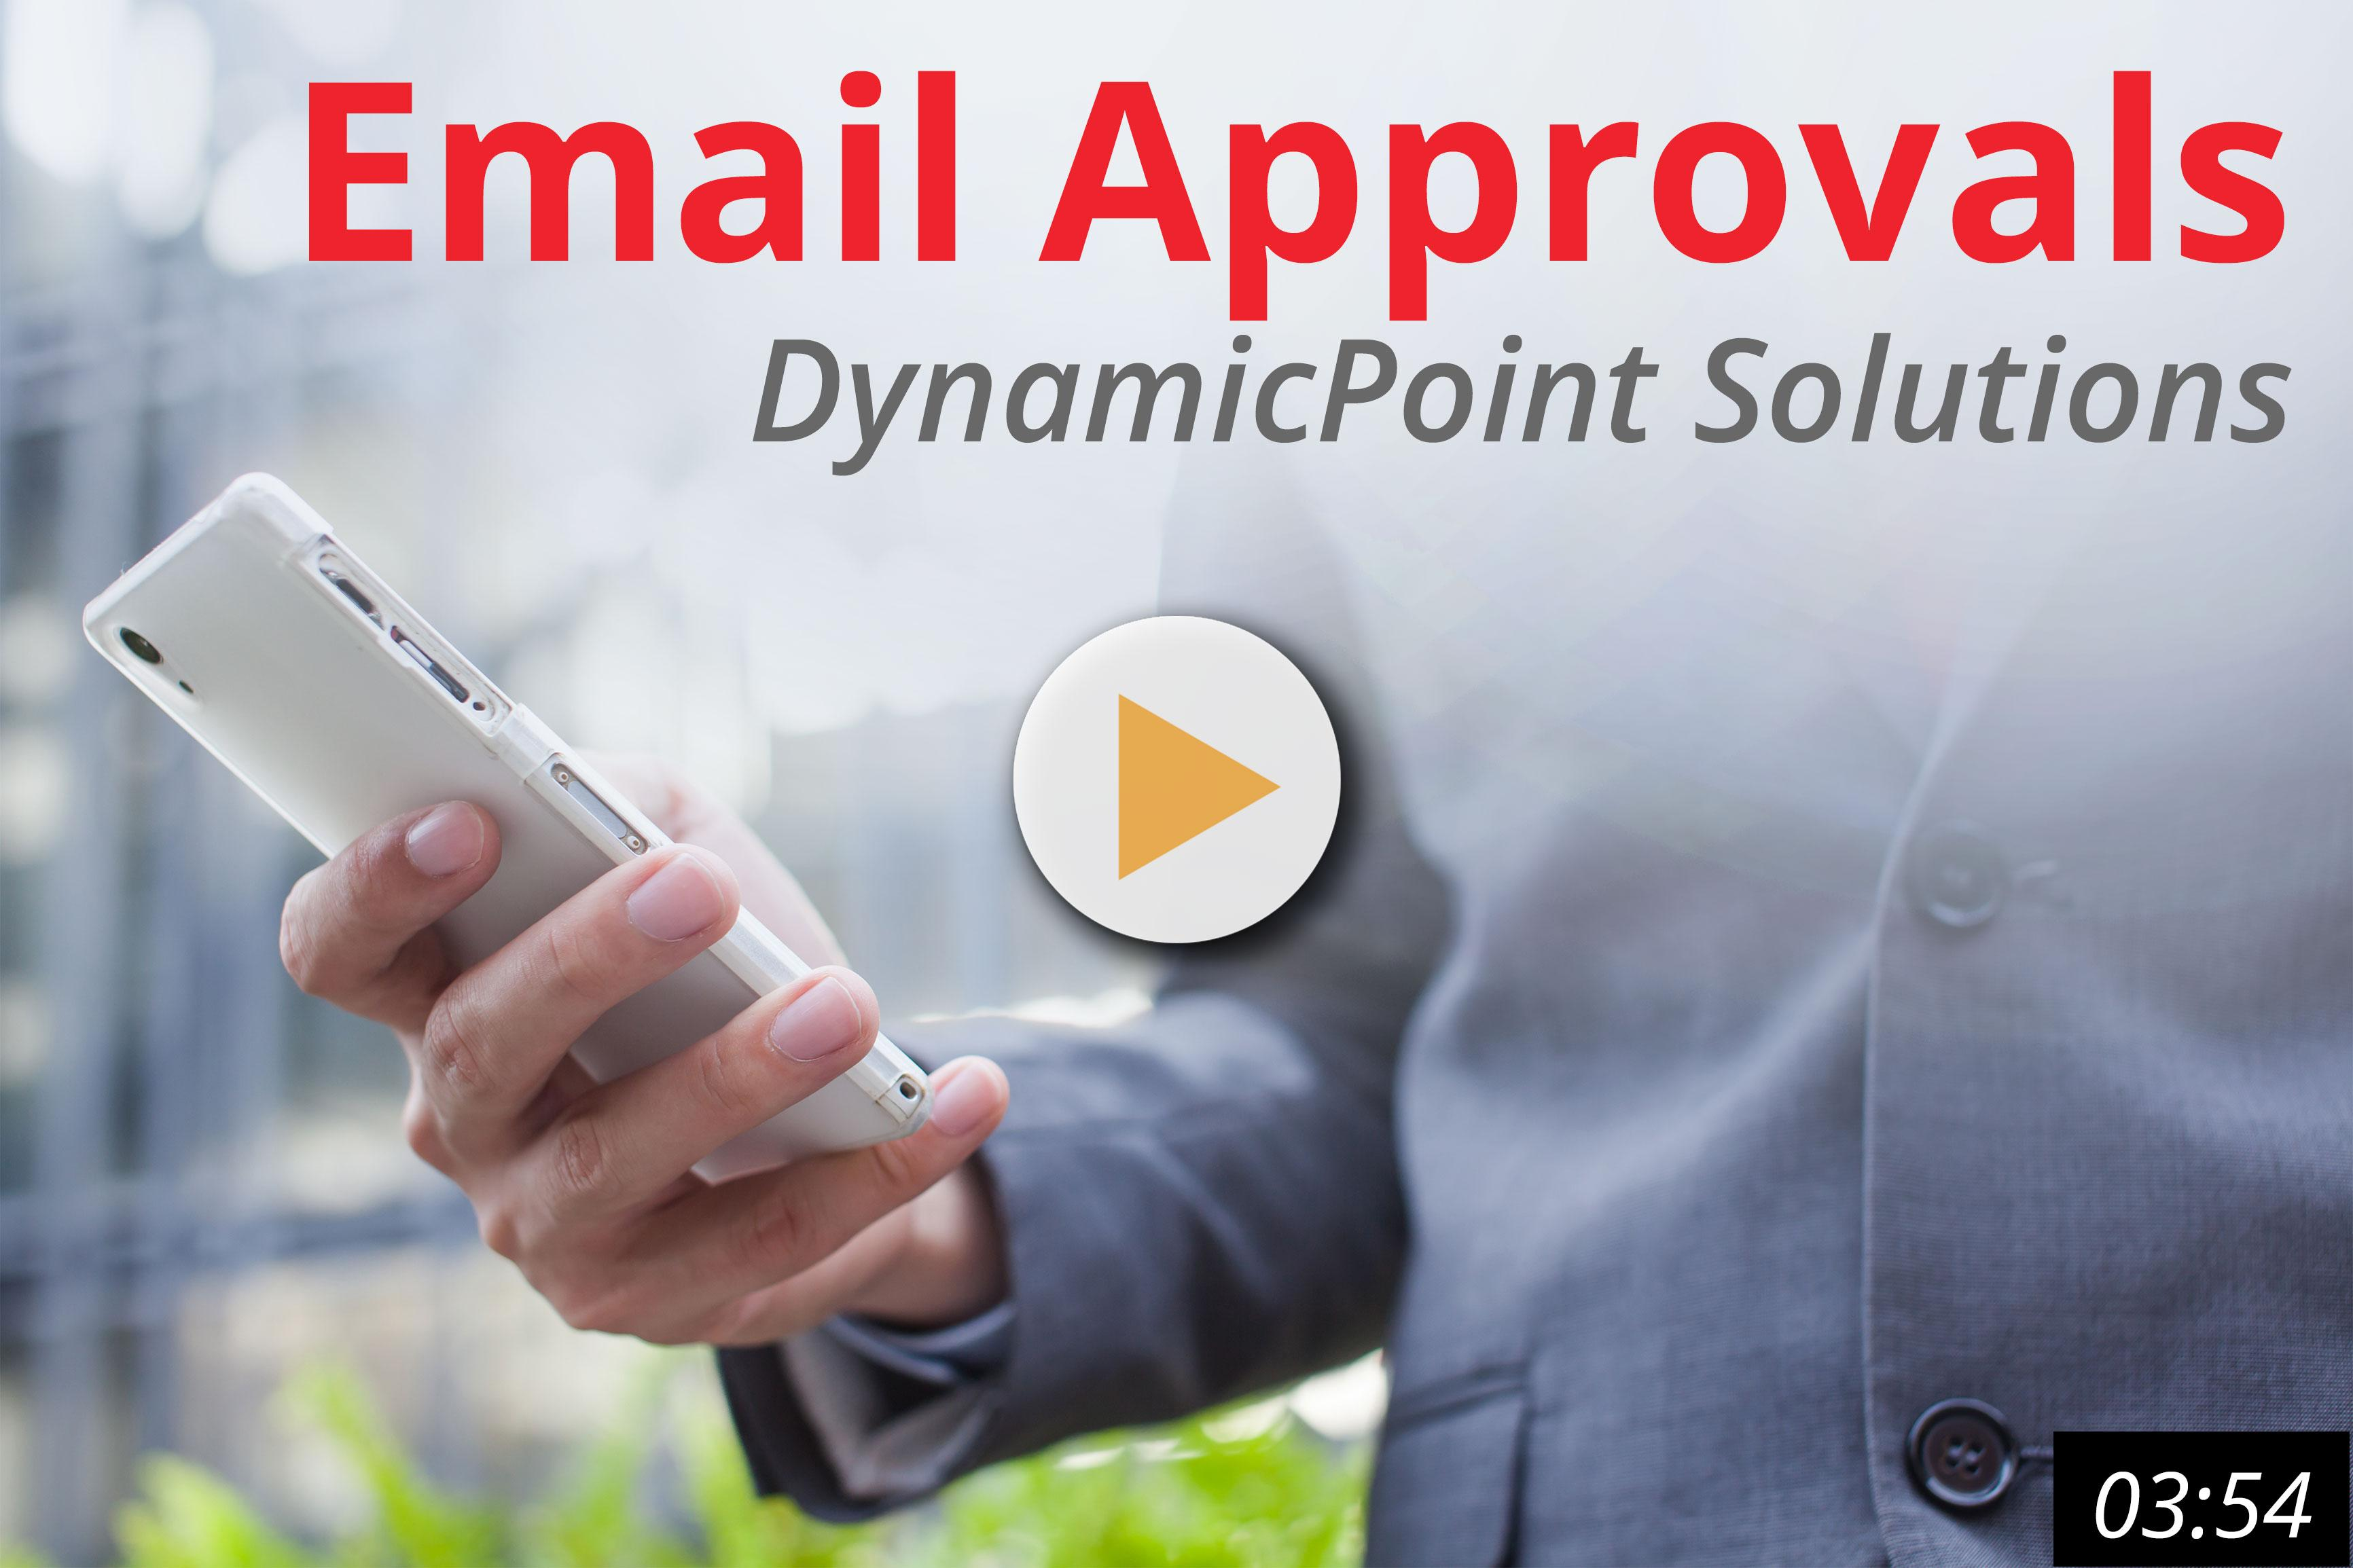 Email Approvals